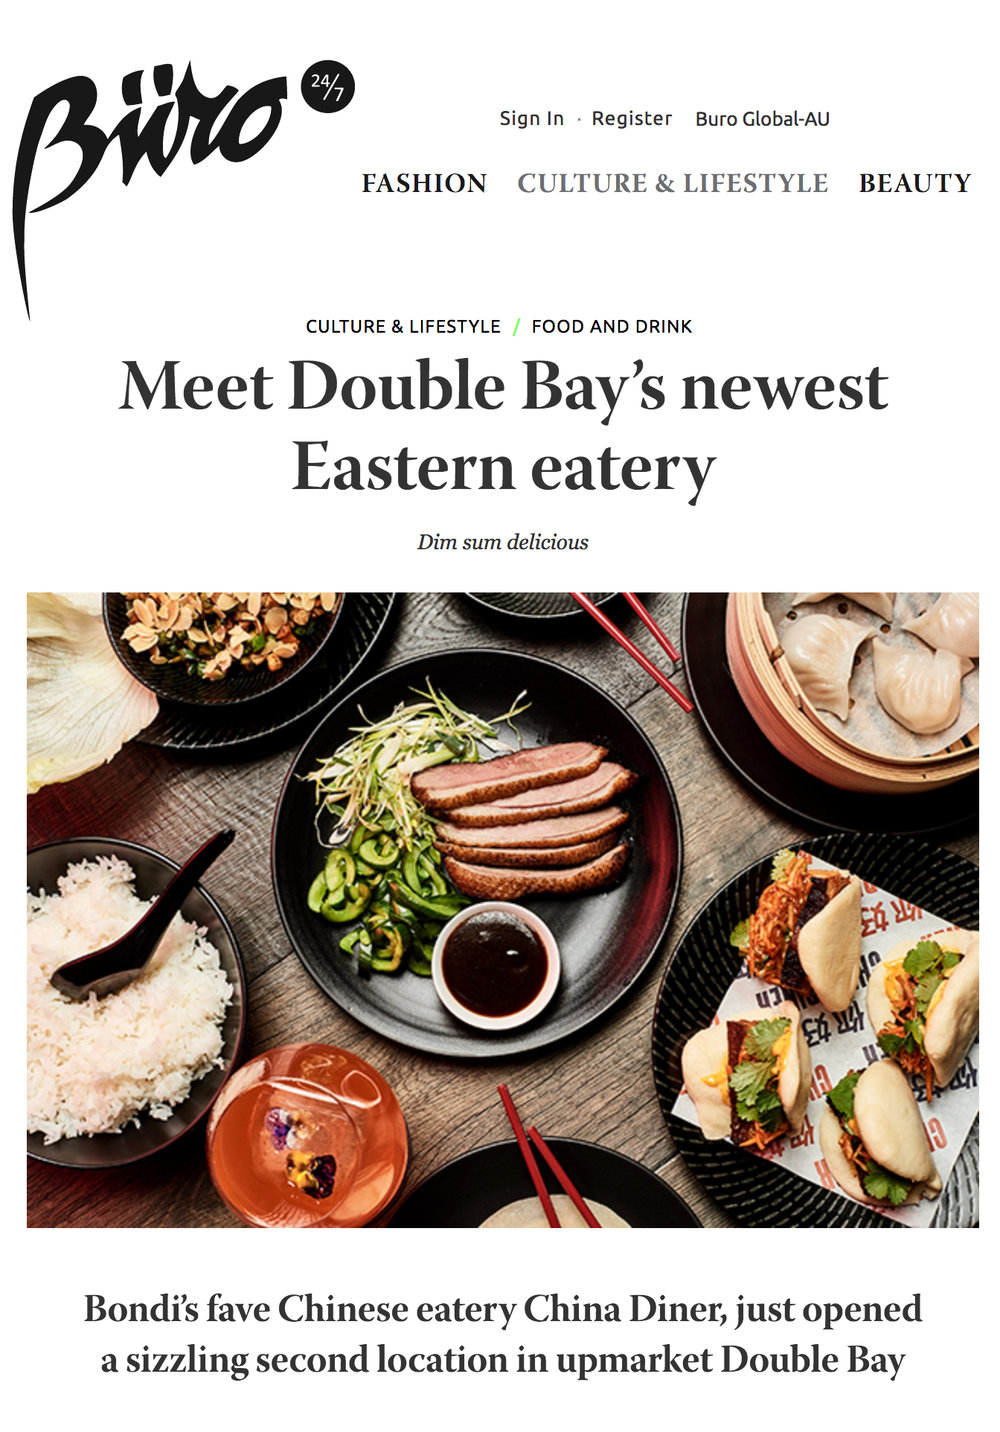 China_Diner_in_Double_Bay_now_open,_Buro_24_7_Australia_-_2018-04-06_12.31.19.jpg